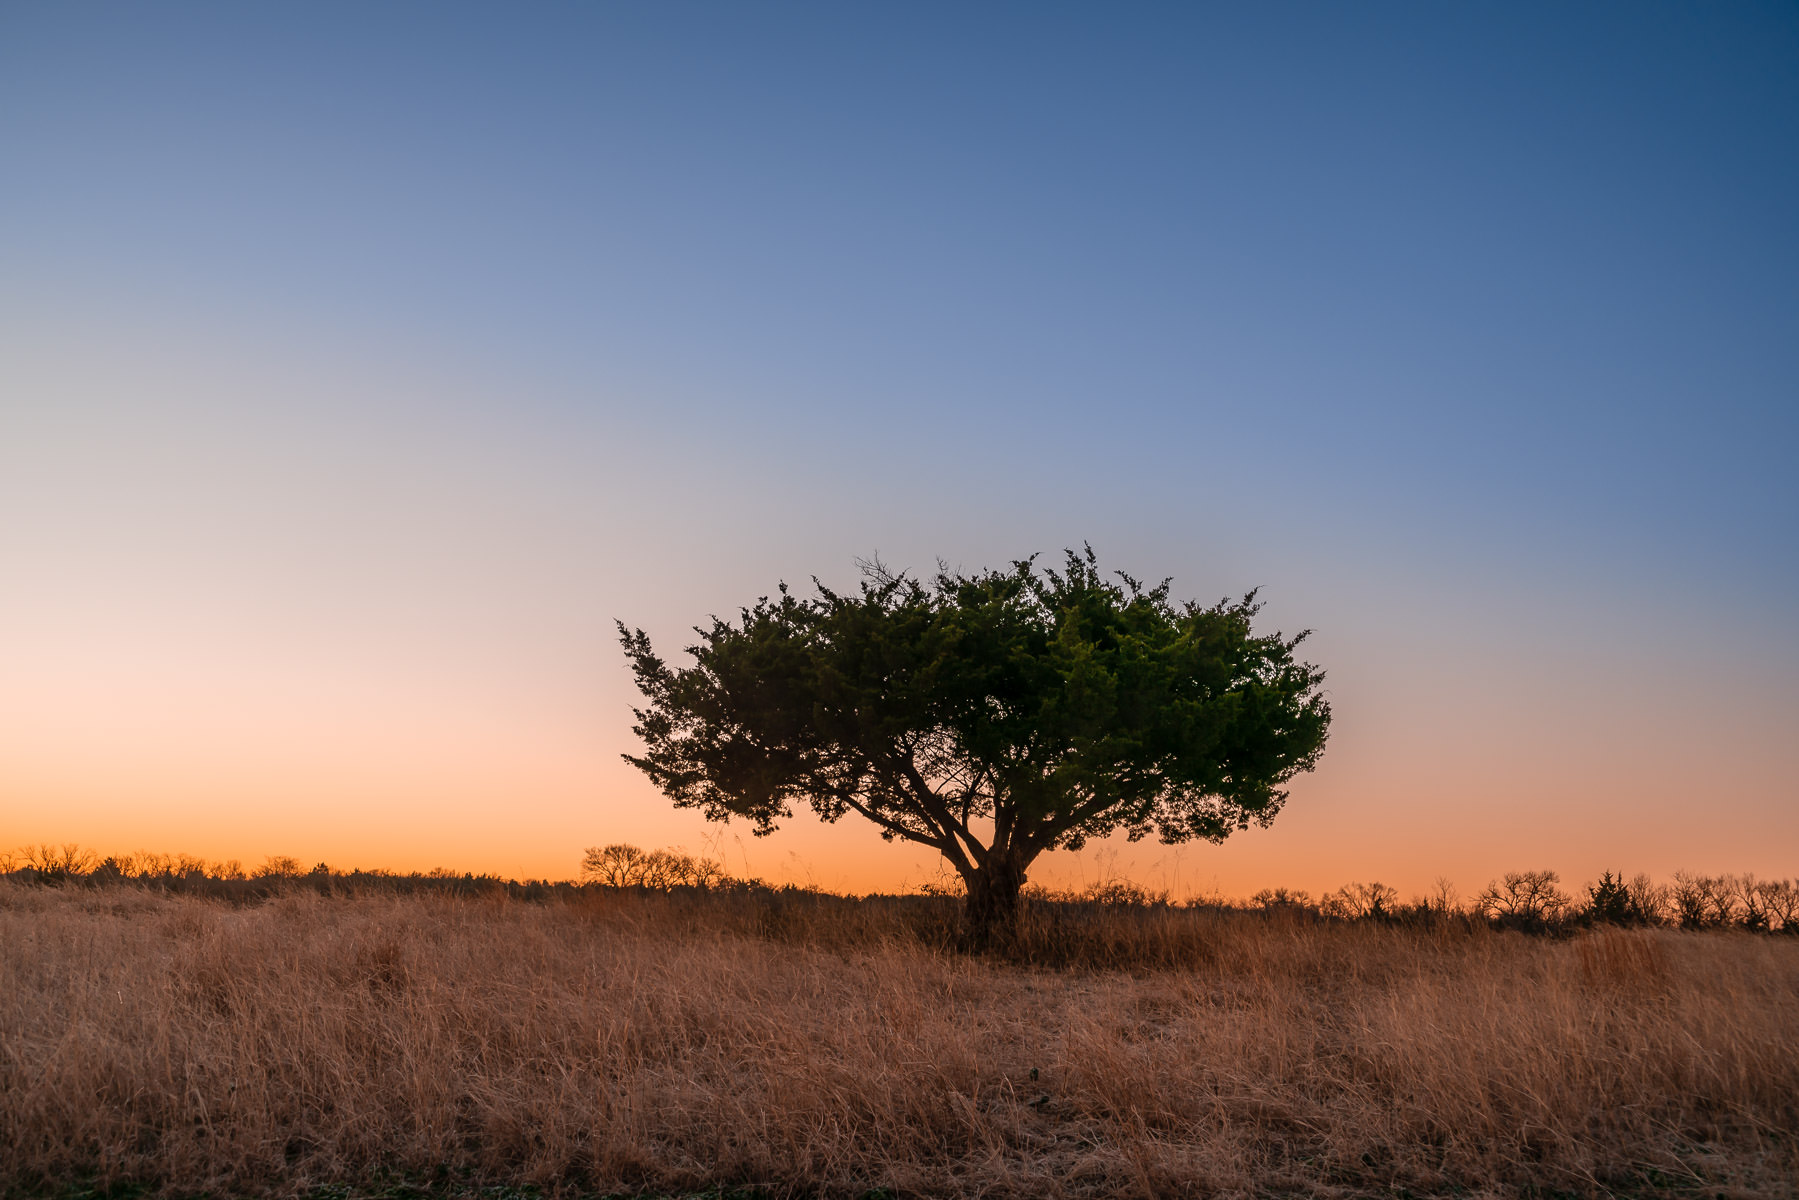 The first light of dawn illuminates a tree at McKinney, Texas' Erwin Park.